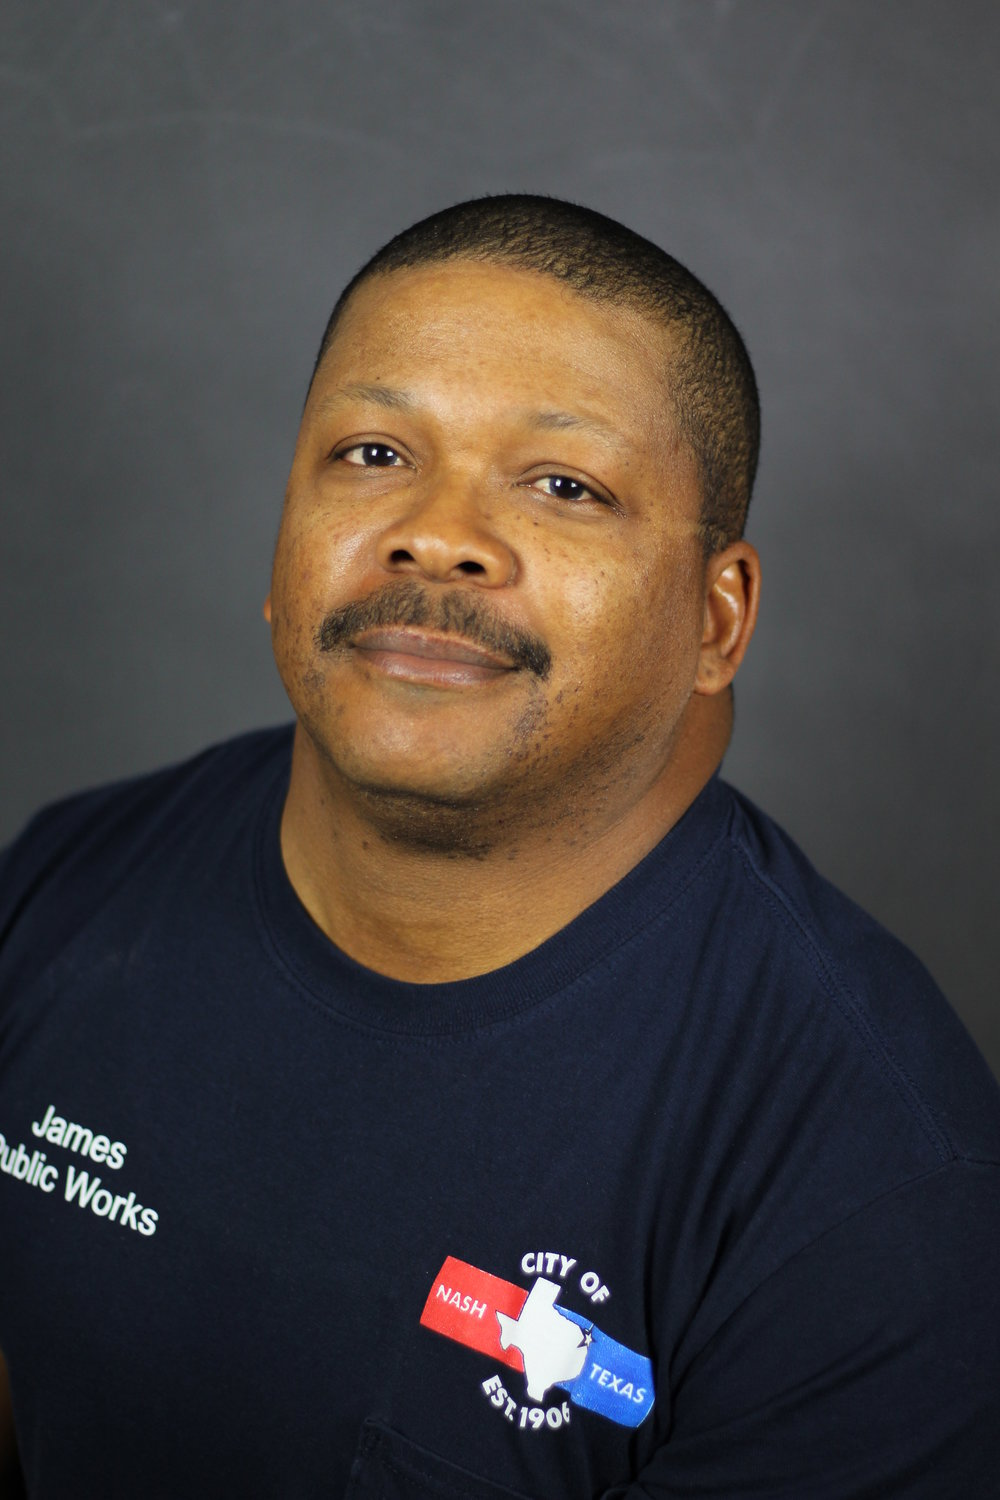 James Williams - Maintenance Supervisor